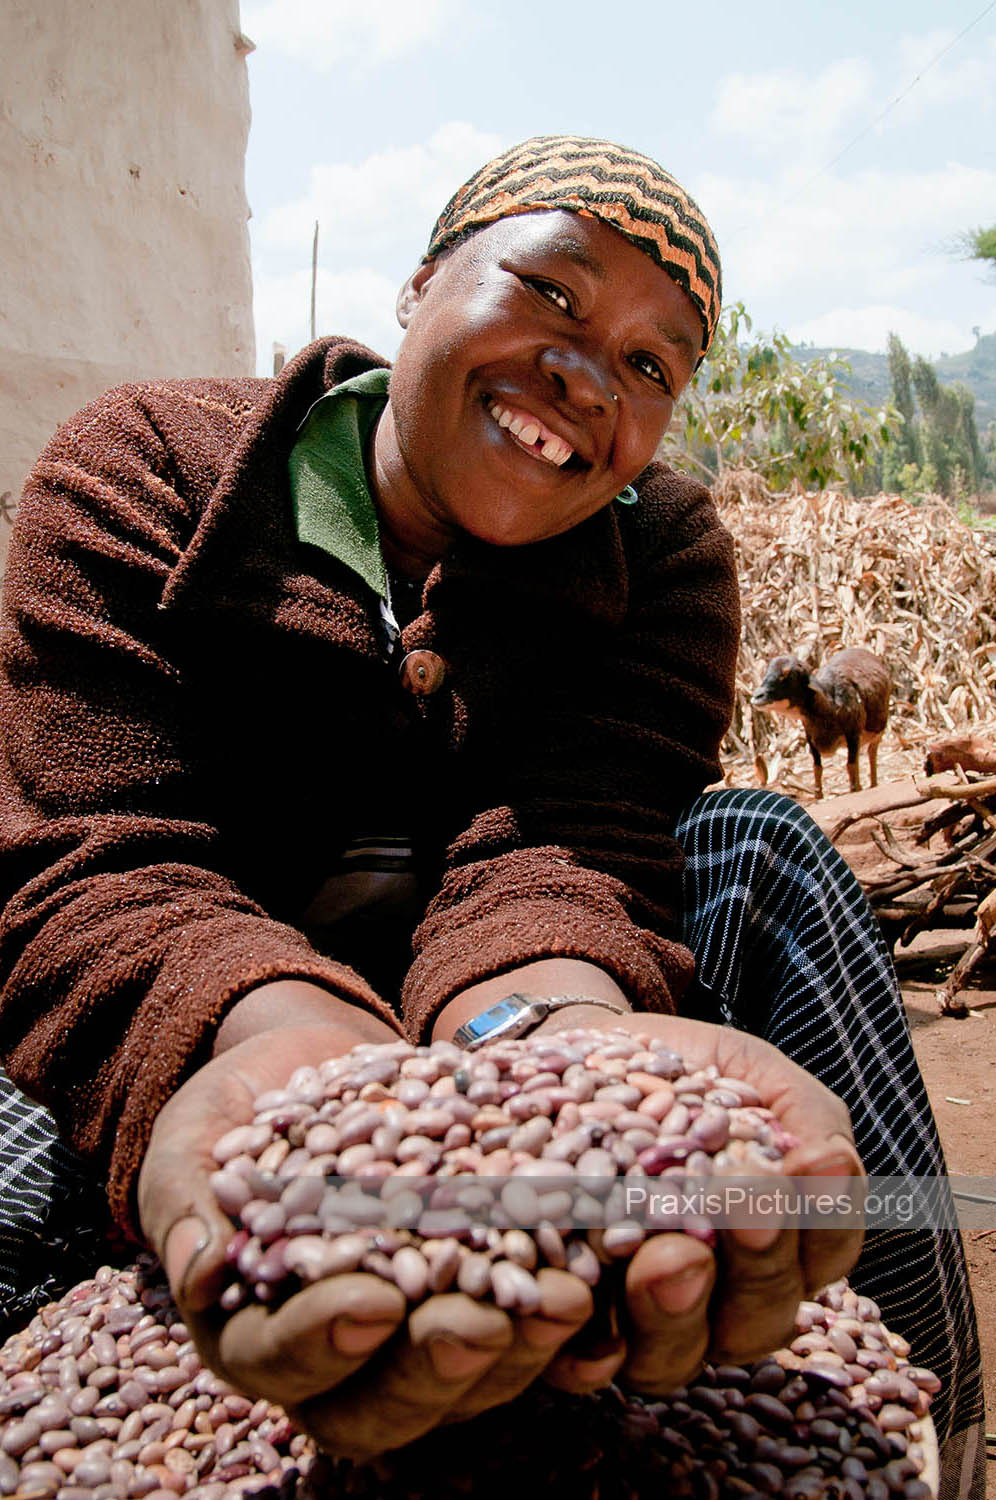 BILIHUSI - Bilihusi is a VICOBA member in Lushoto who has taken out loans to invest in her farm. She raises goats and a cow and sells beans and potatoes in the Lushoto market. She is now able to grow all the food she needs to provide for her family of five.